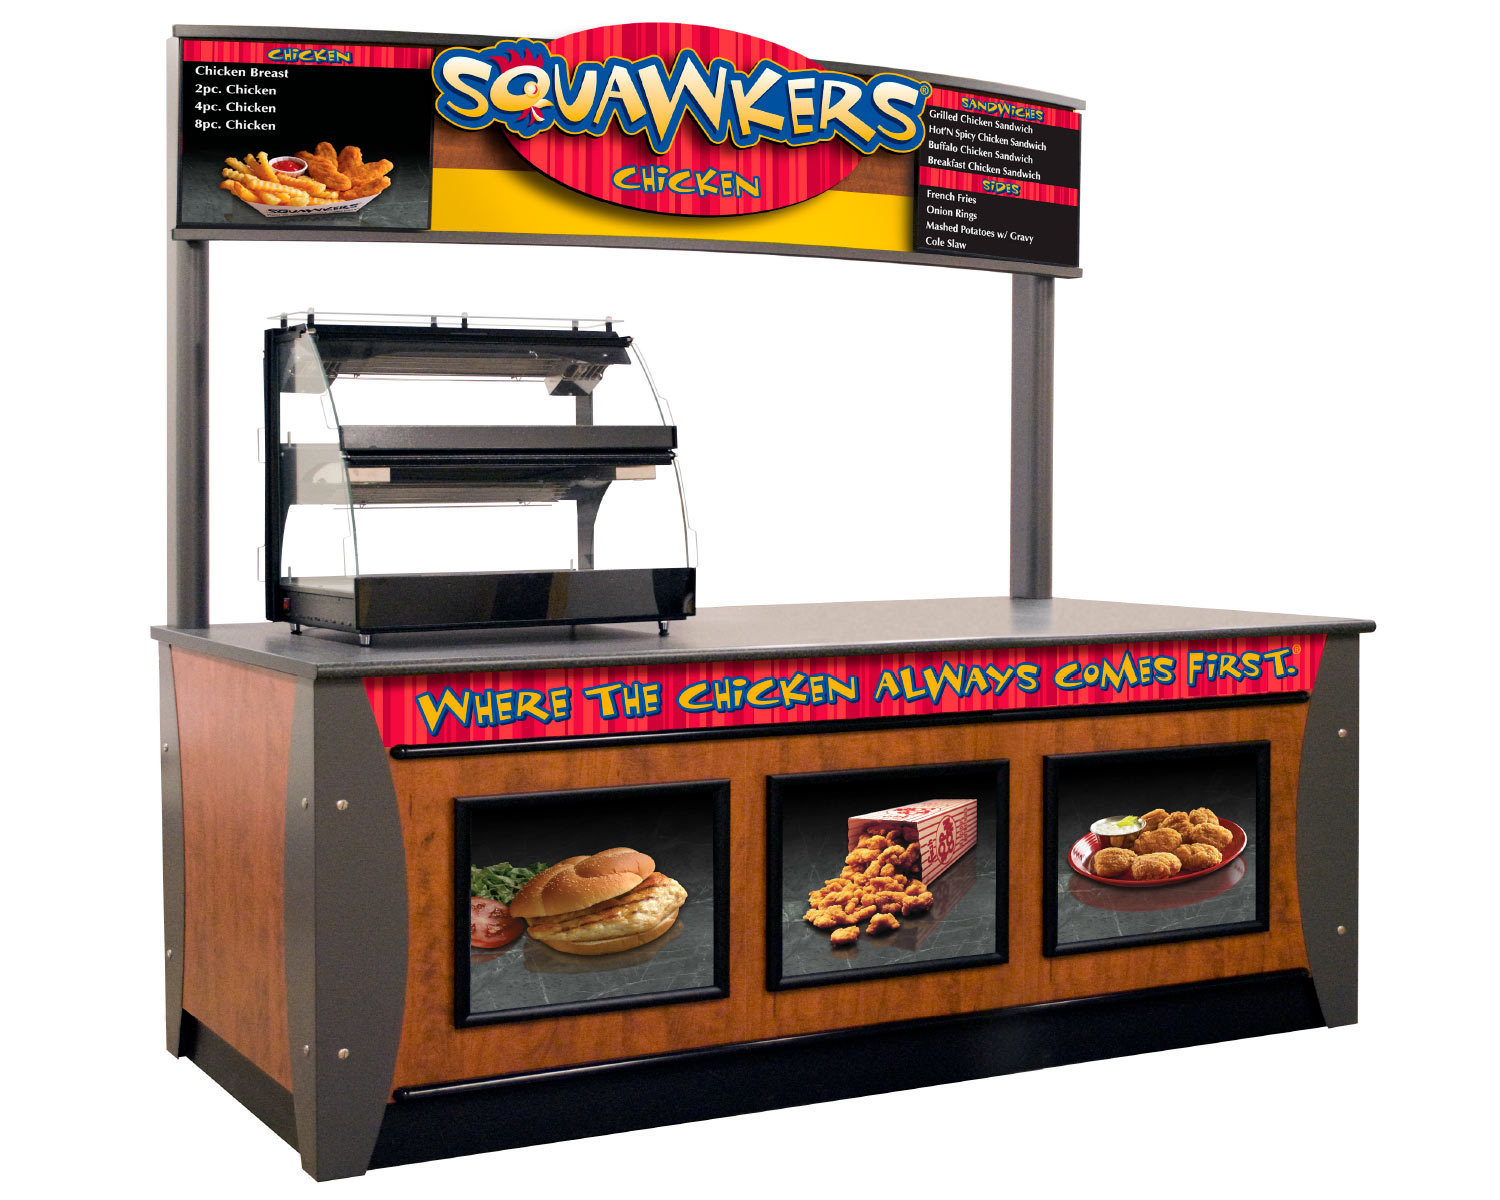 Squawkers-Kiosk-Large.jpg